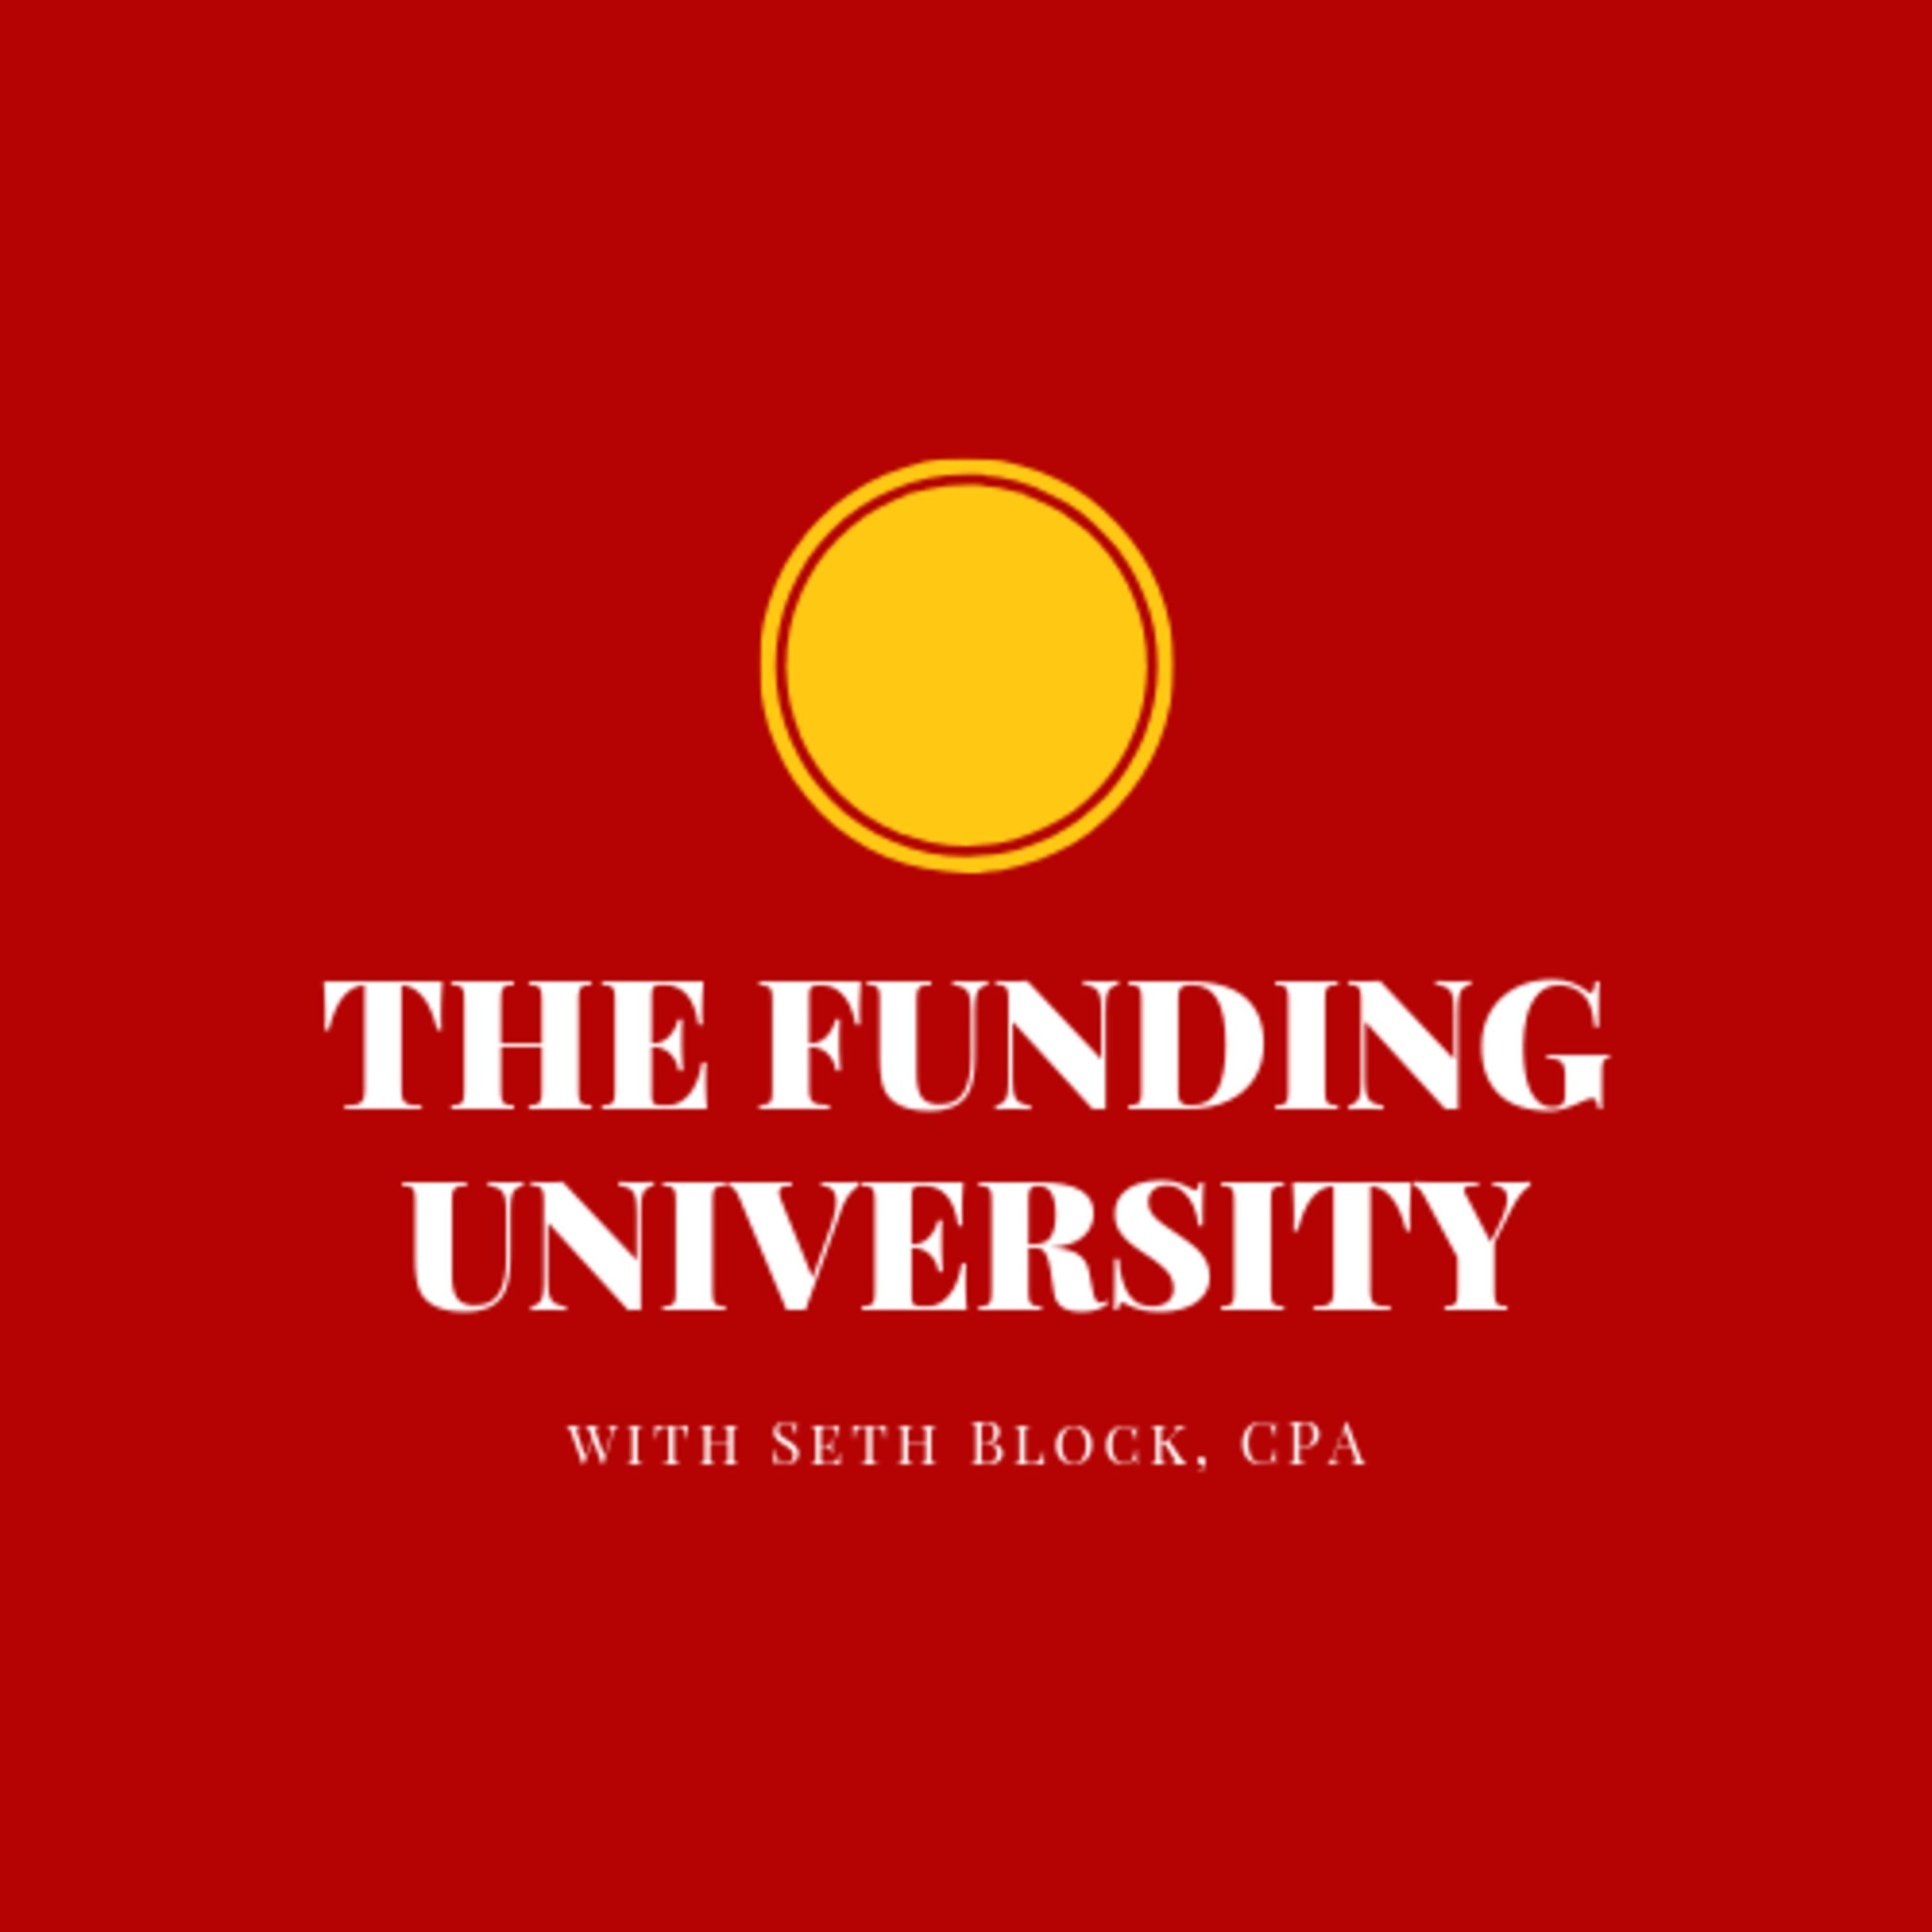 The Funding University | Where Business Learns About Funding